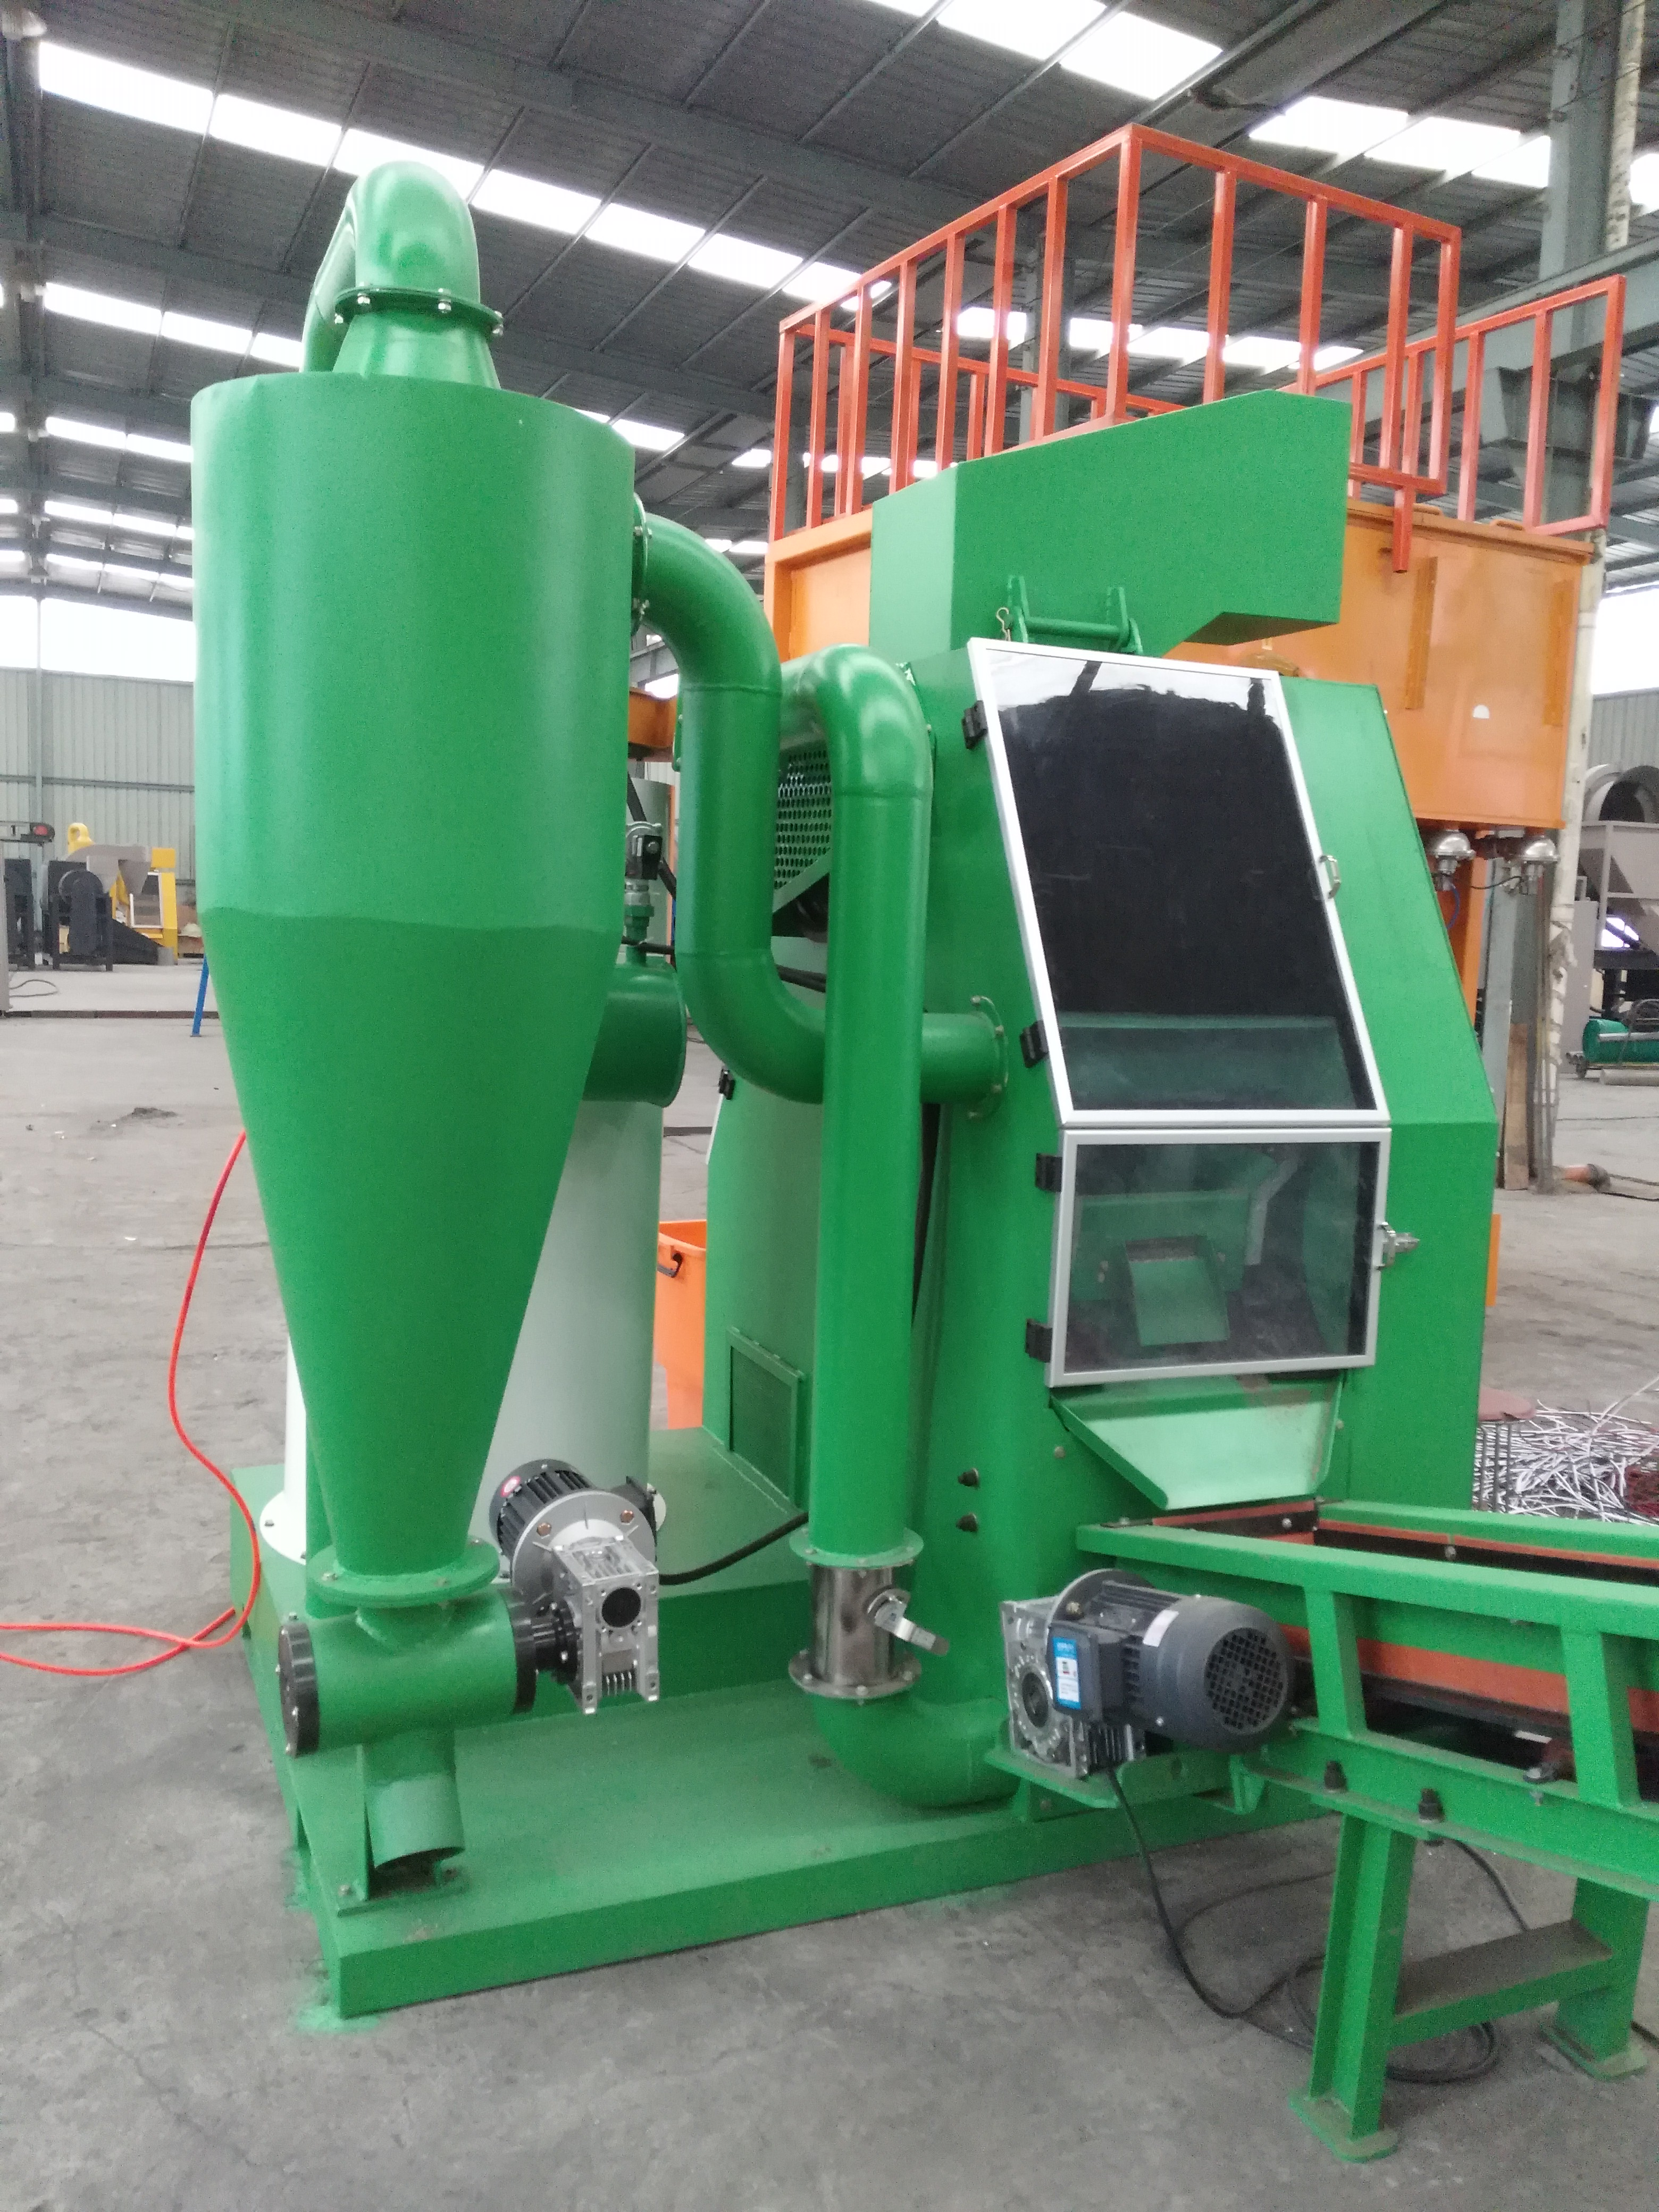 China Scrap Board Manufacturers And Suppliers On Printed Circuit Pcb Recycling Machine Waste Alibabacom